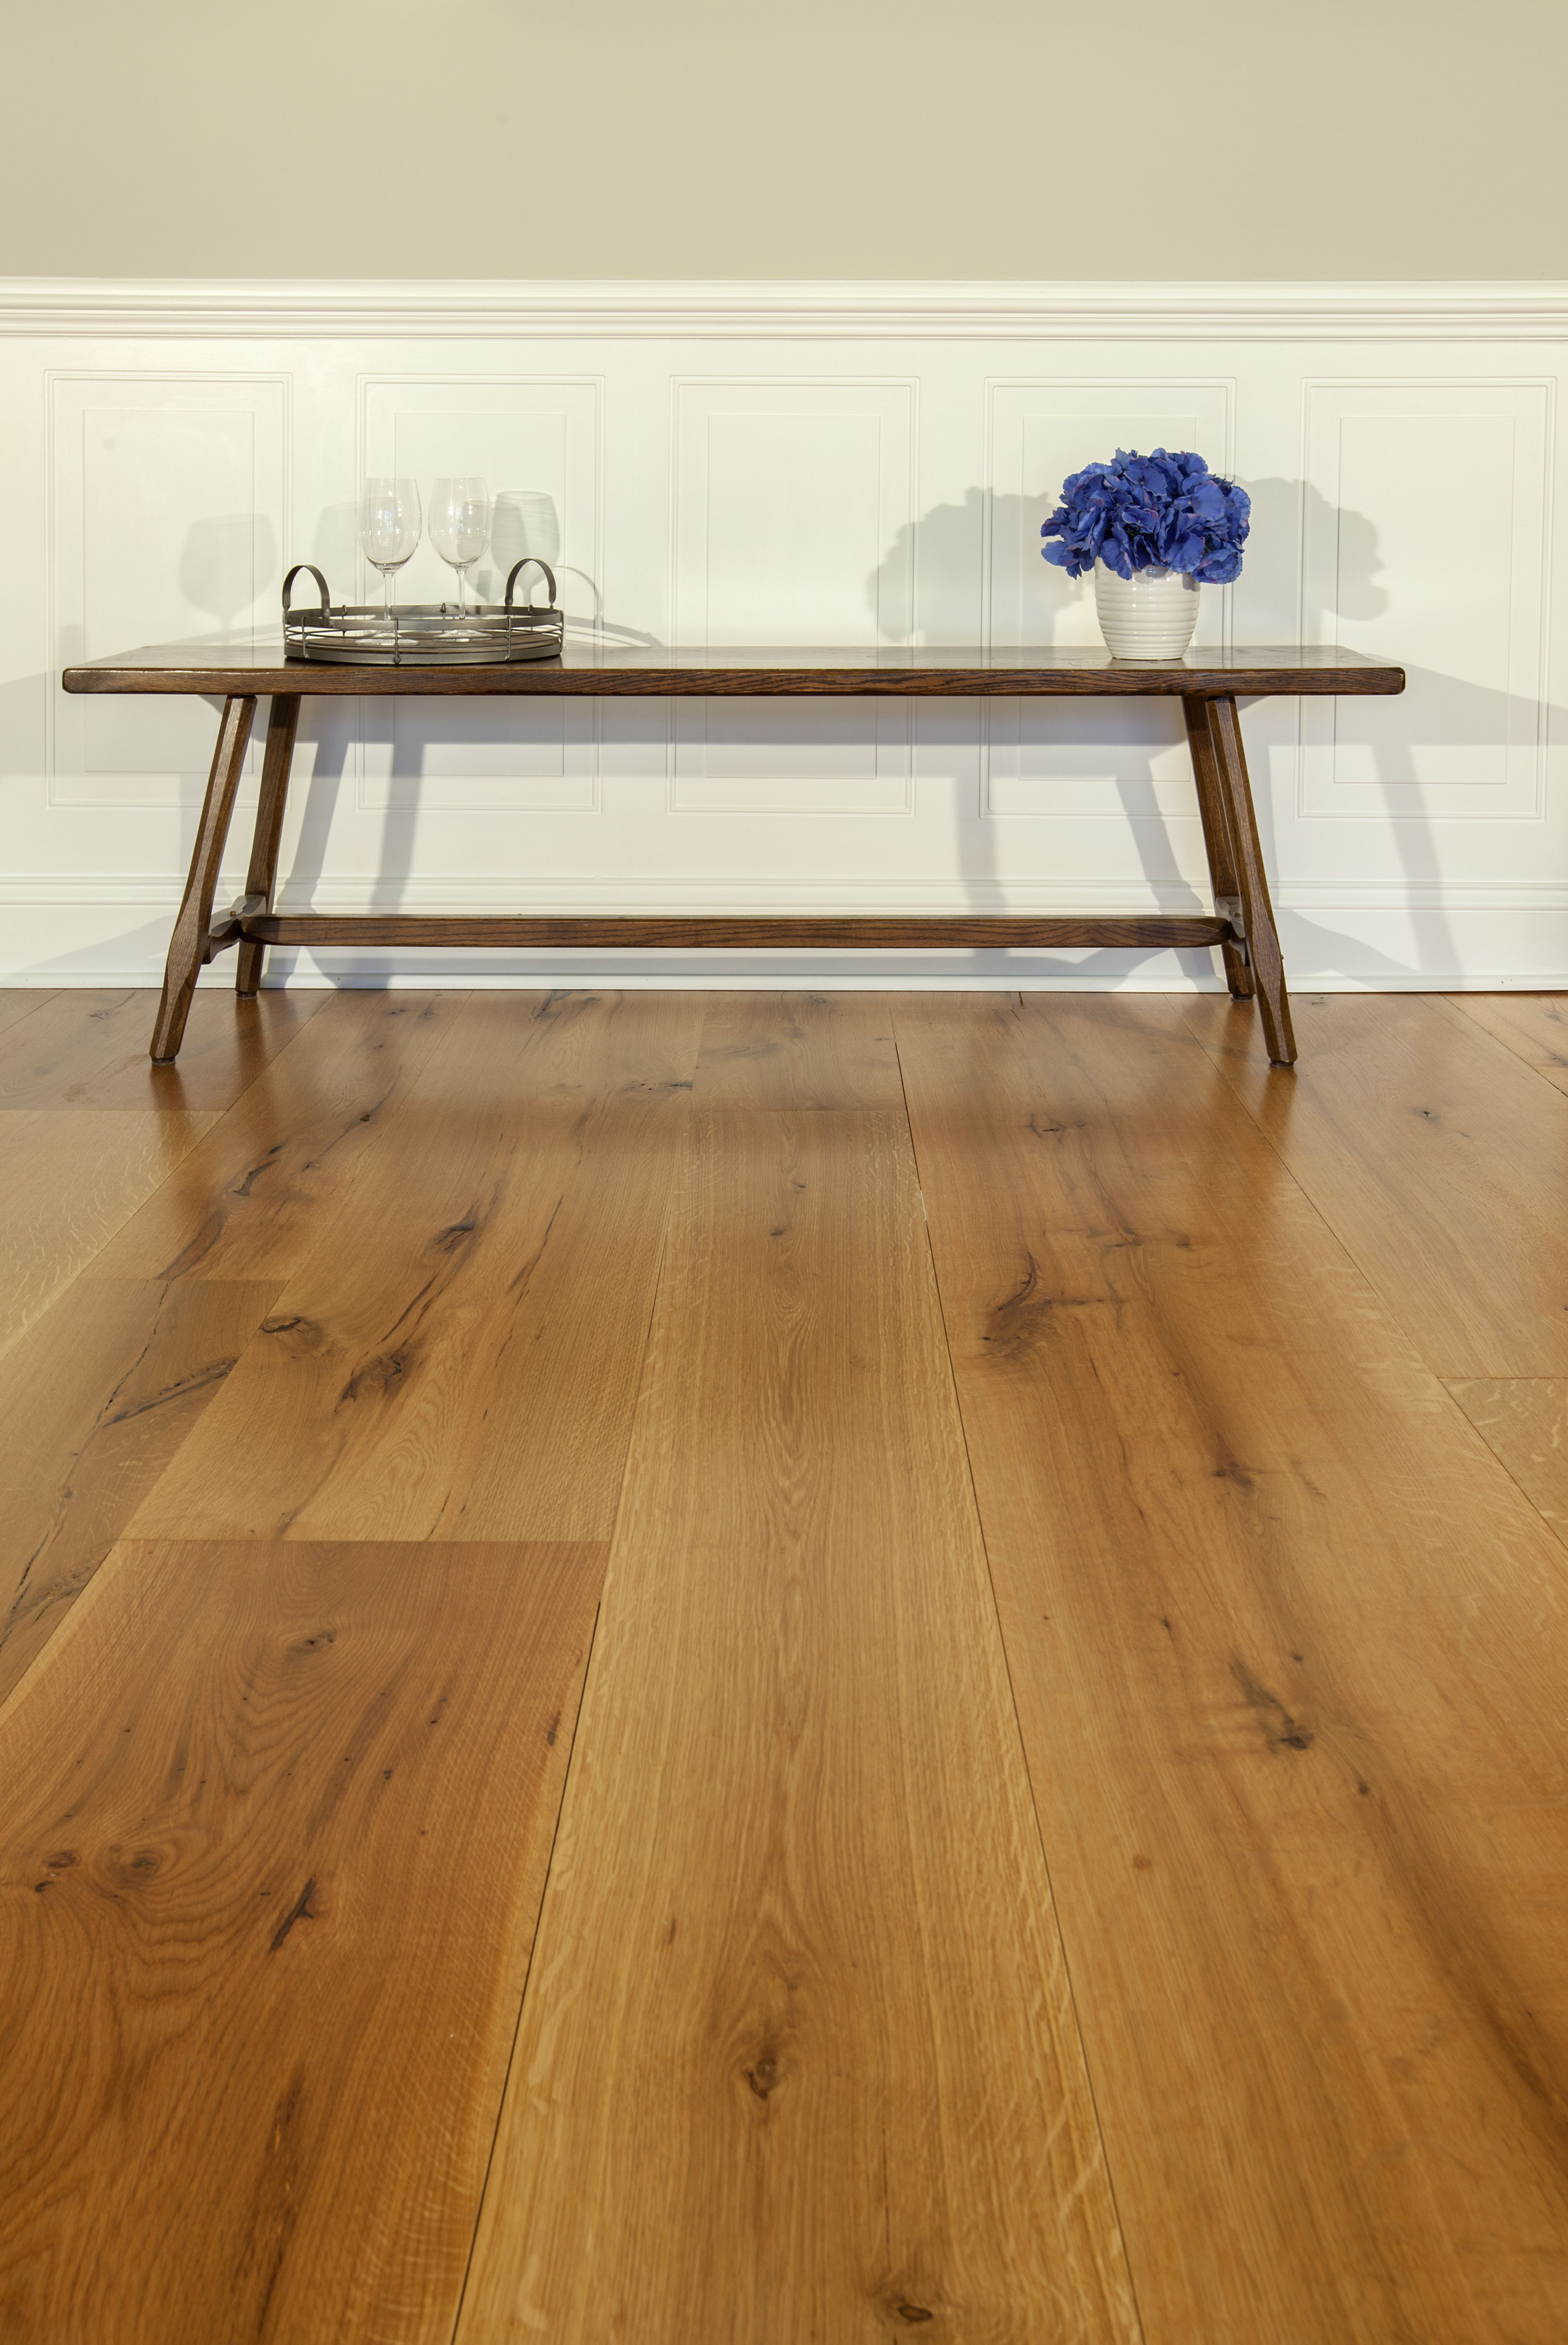 30 Lovable Unfinished Hardwood Flooring Suppliers 2021 free download unfinished hardwood flooring suppliers of unfinished engineered white oak character live sawn custom wide within unfinished engineered white oak character live sawn